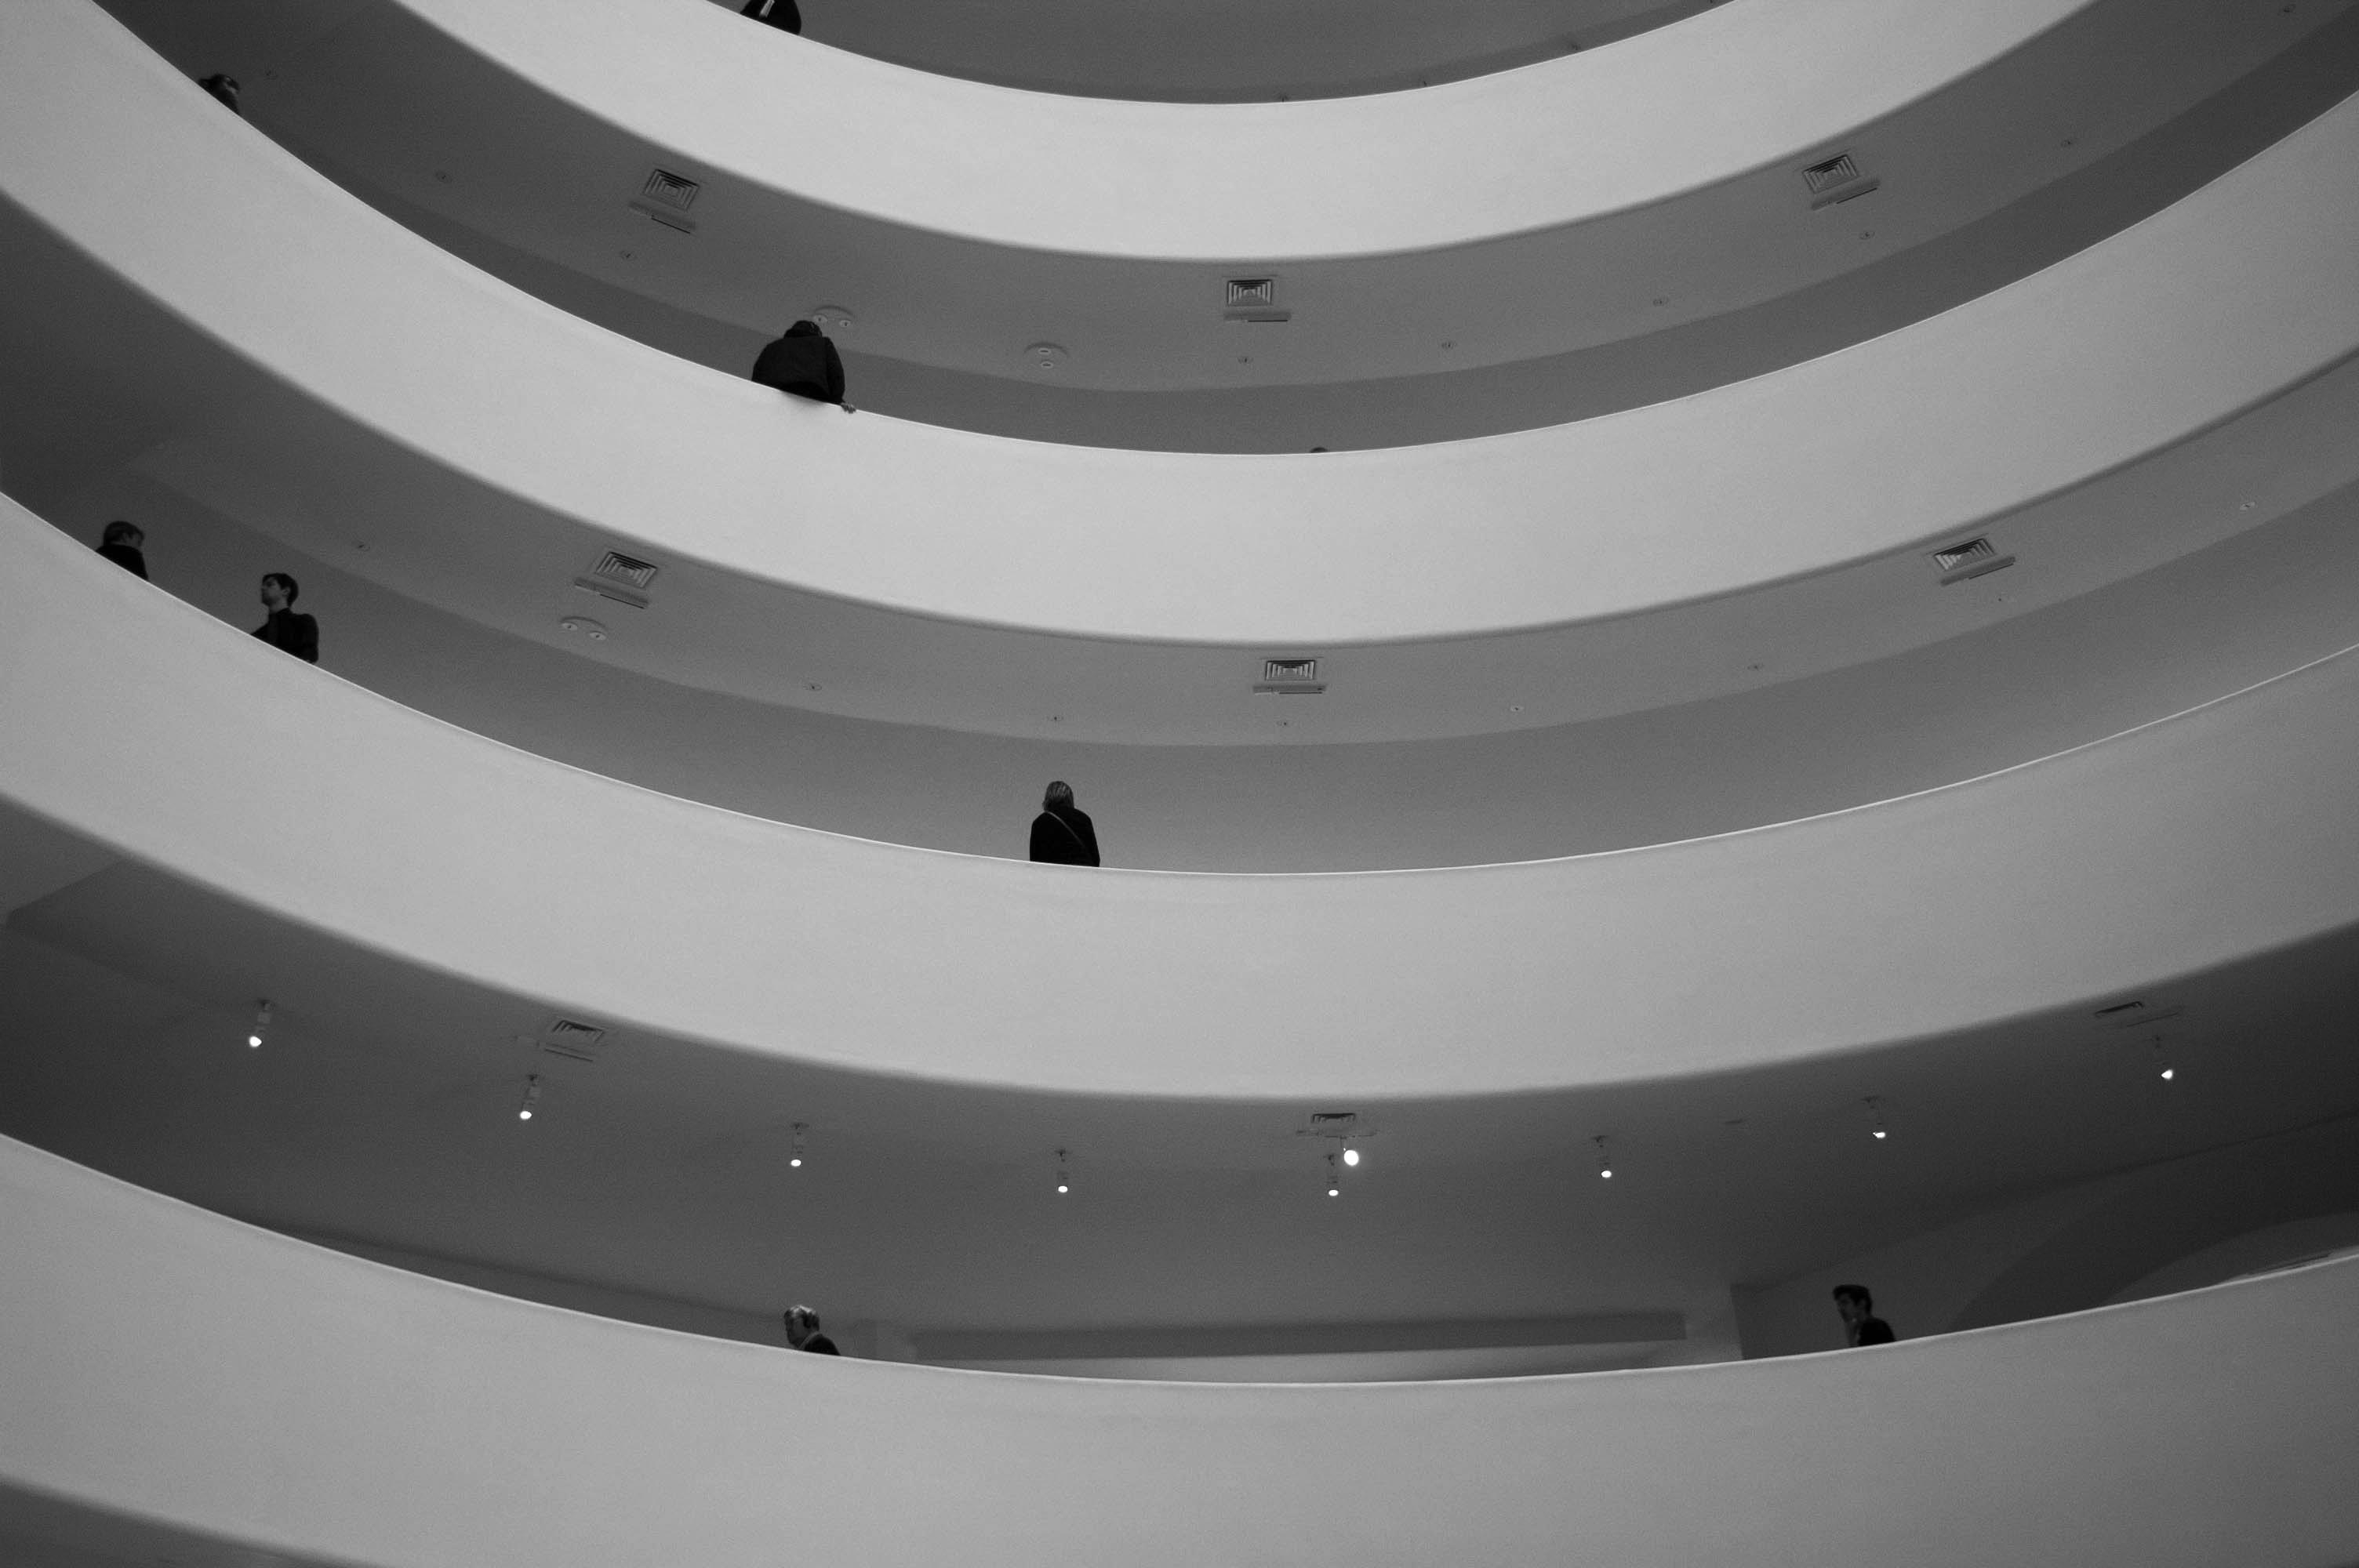 Taken from a lower level looking up, a black-and-white photo shows four levels of a building that curve inwards.